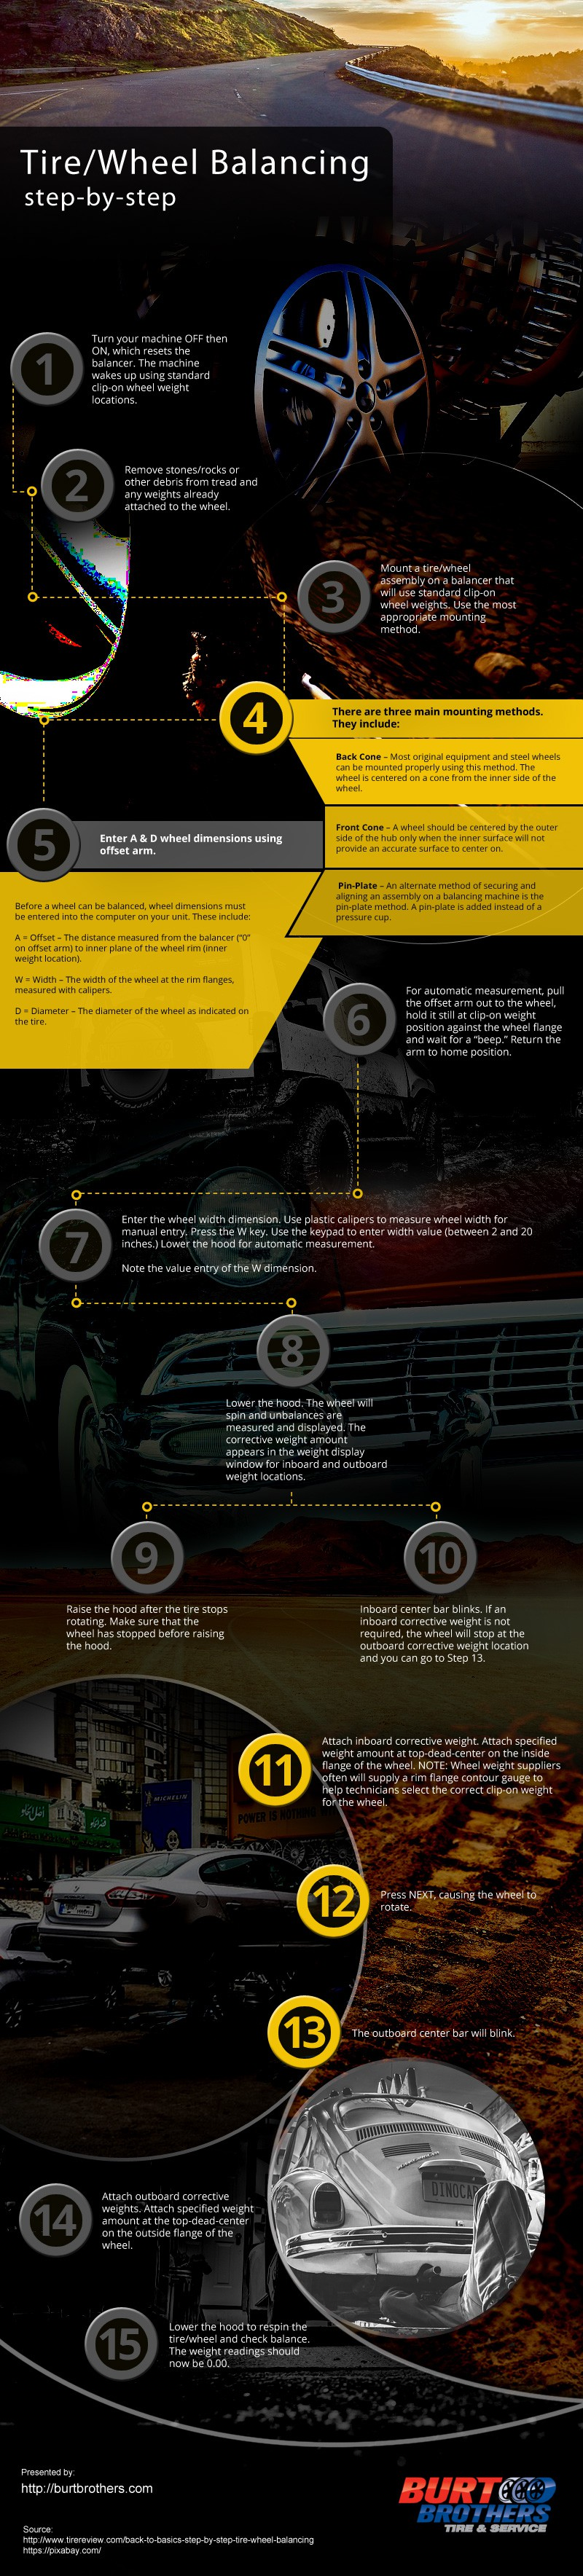 Tire/Wheel Balancing step-by-step [infographic]